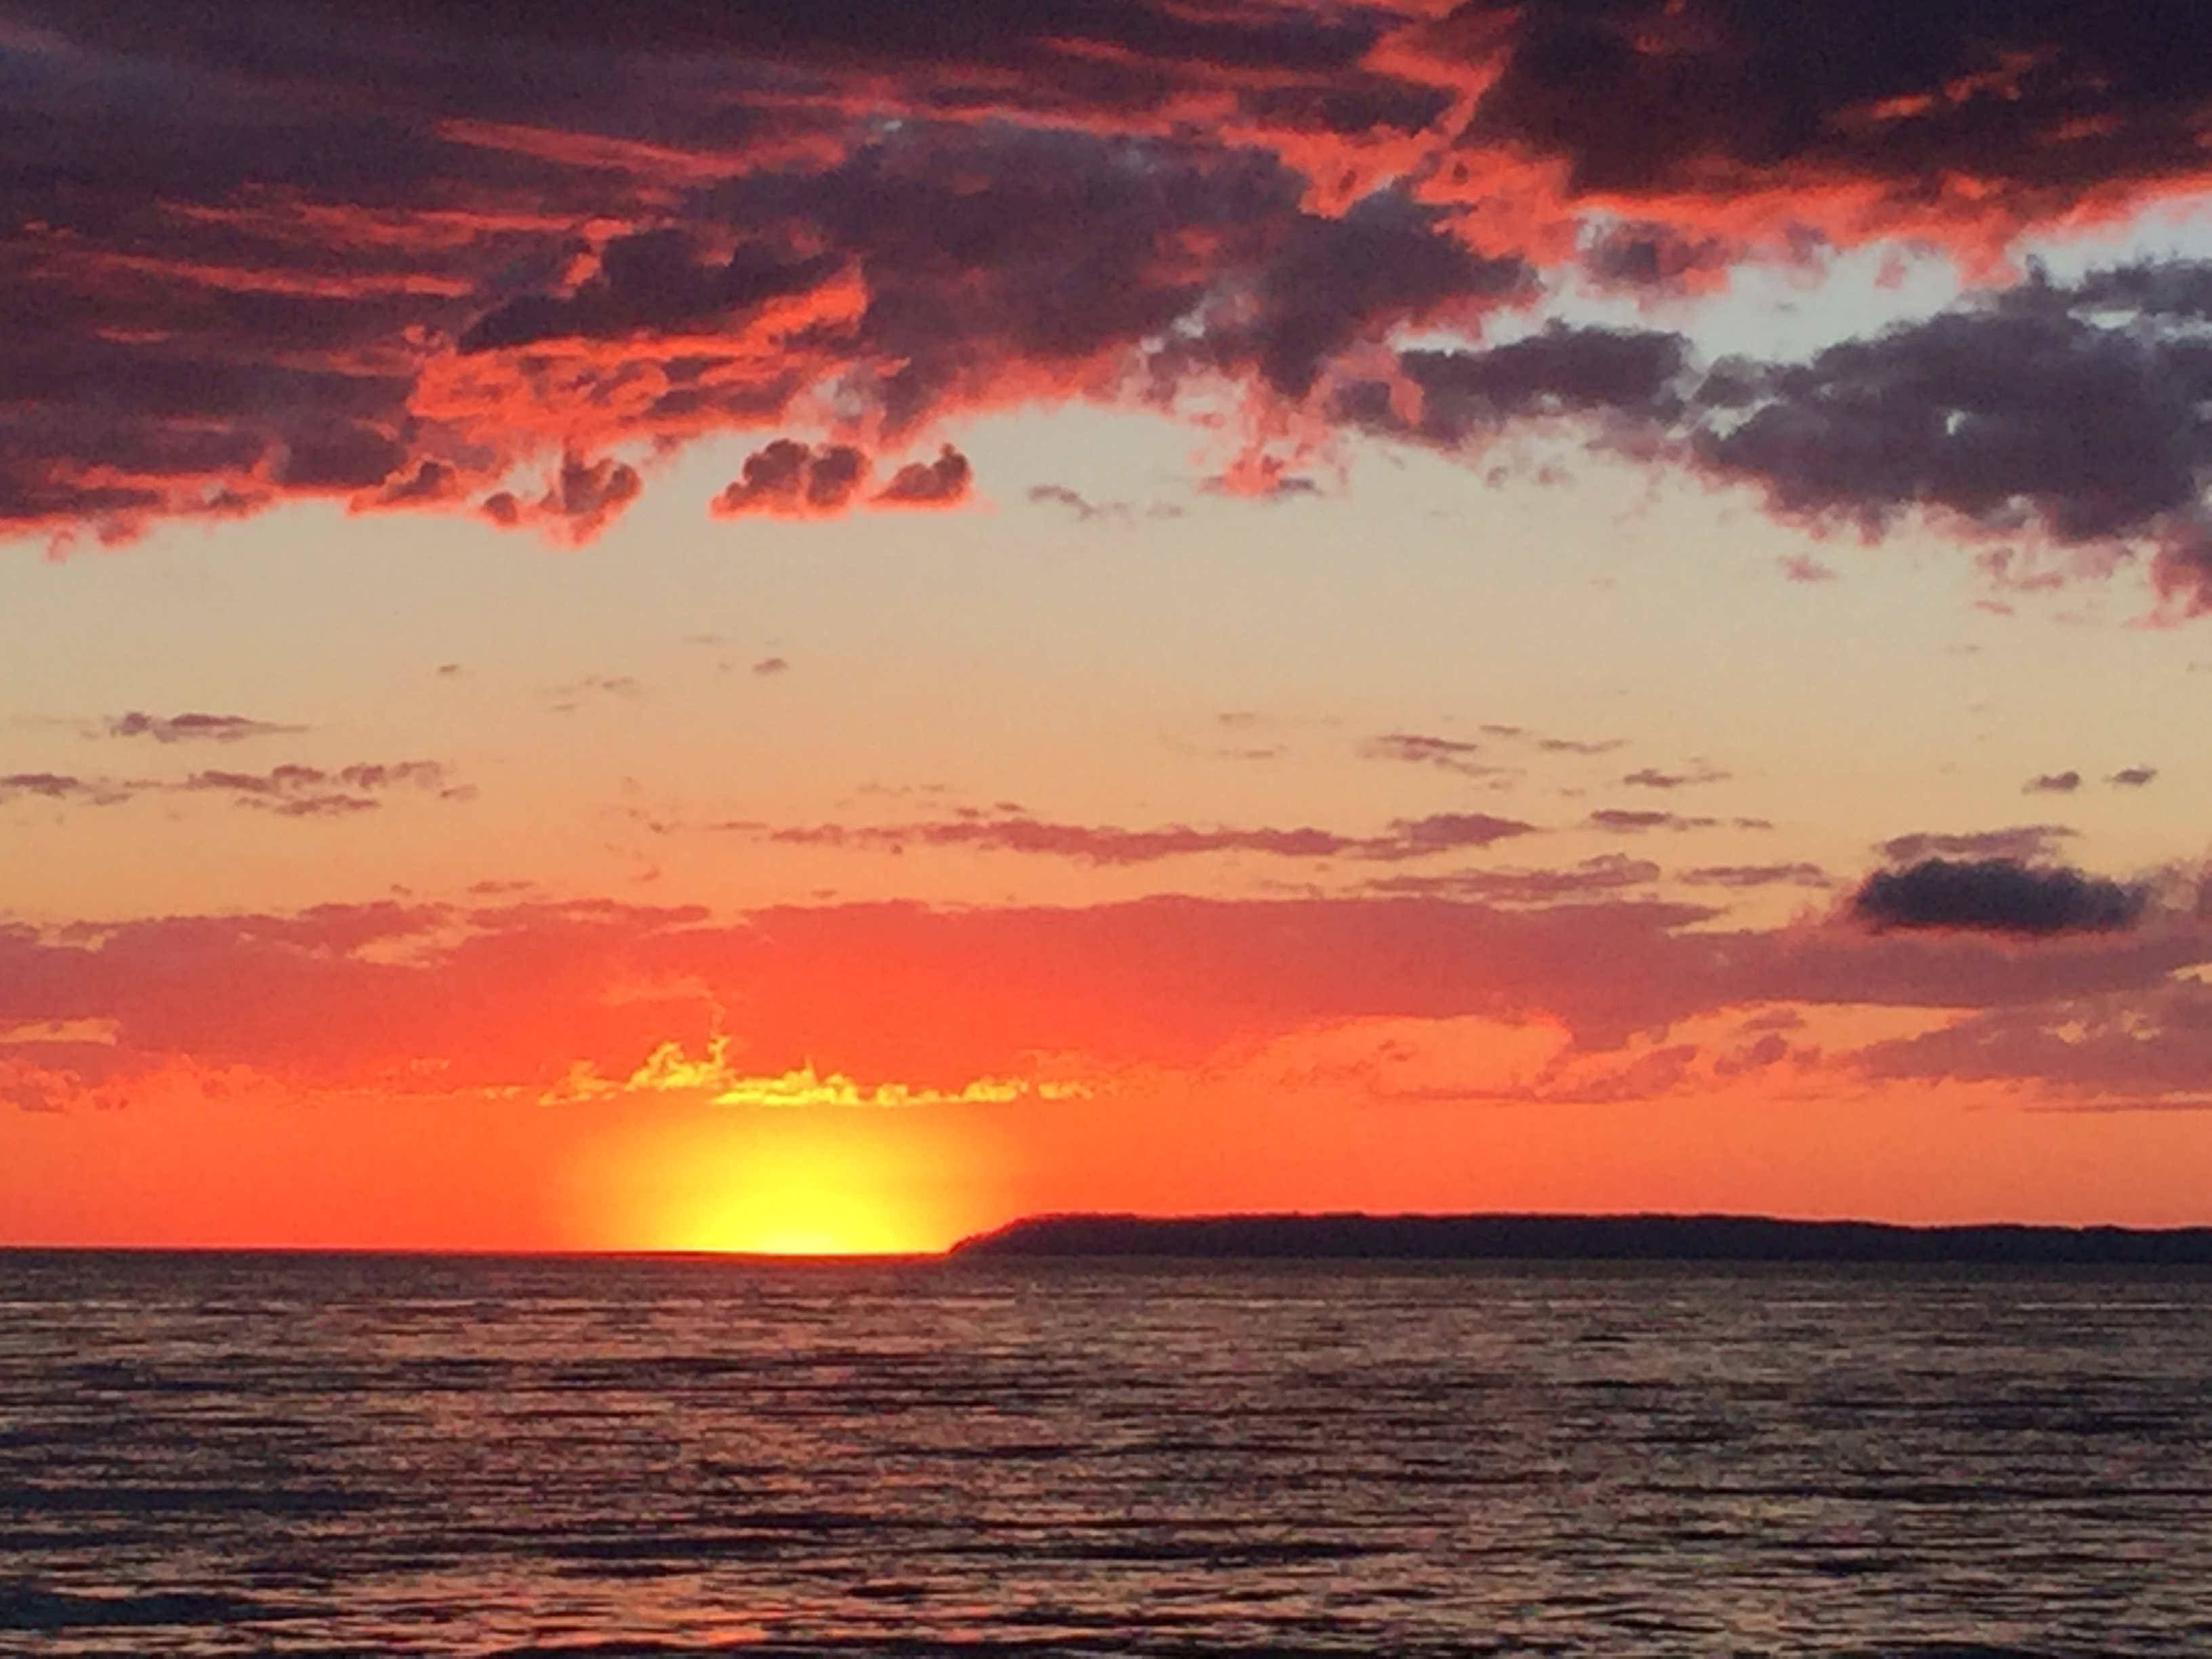 Celebrate the sunset at one of many beaches